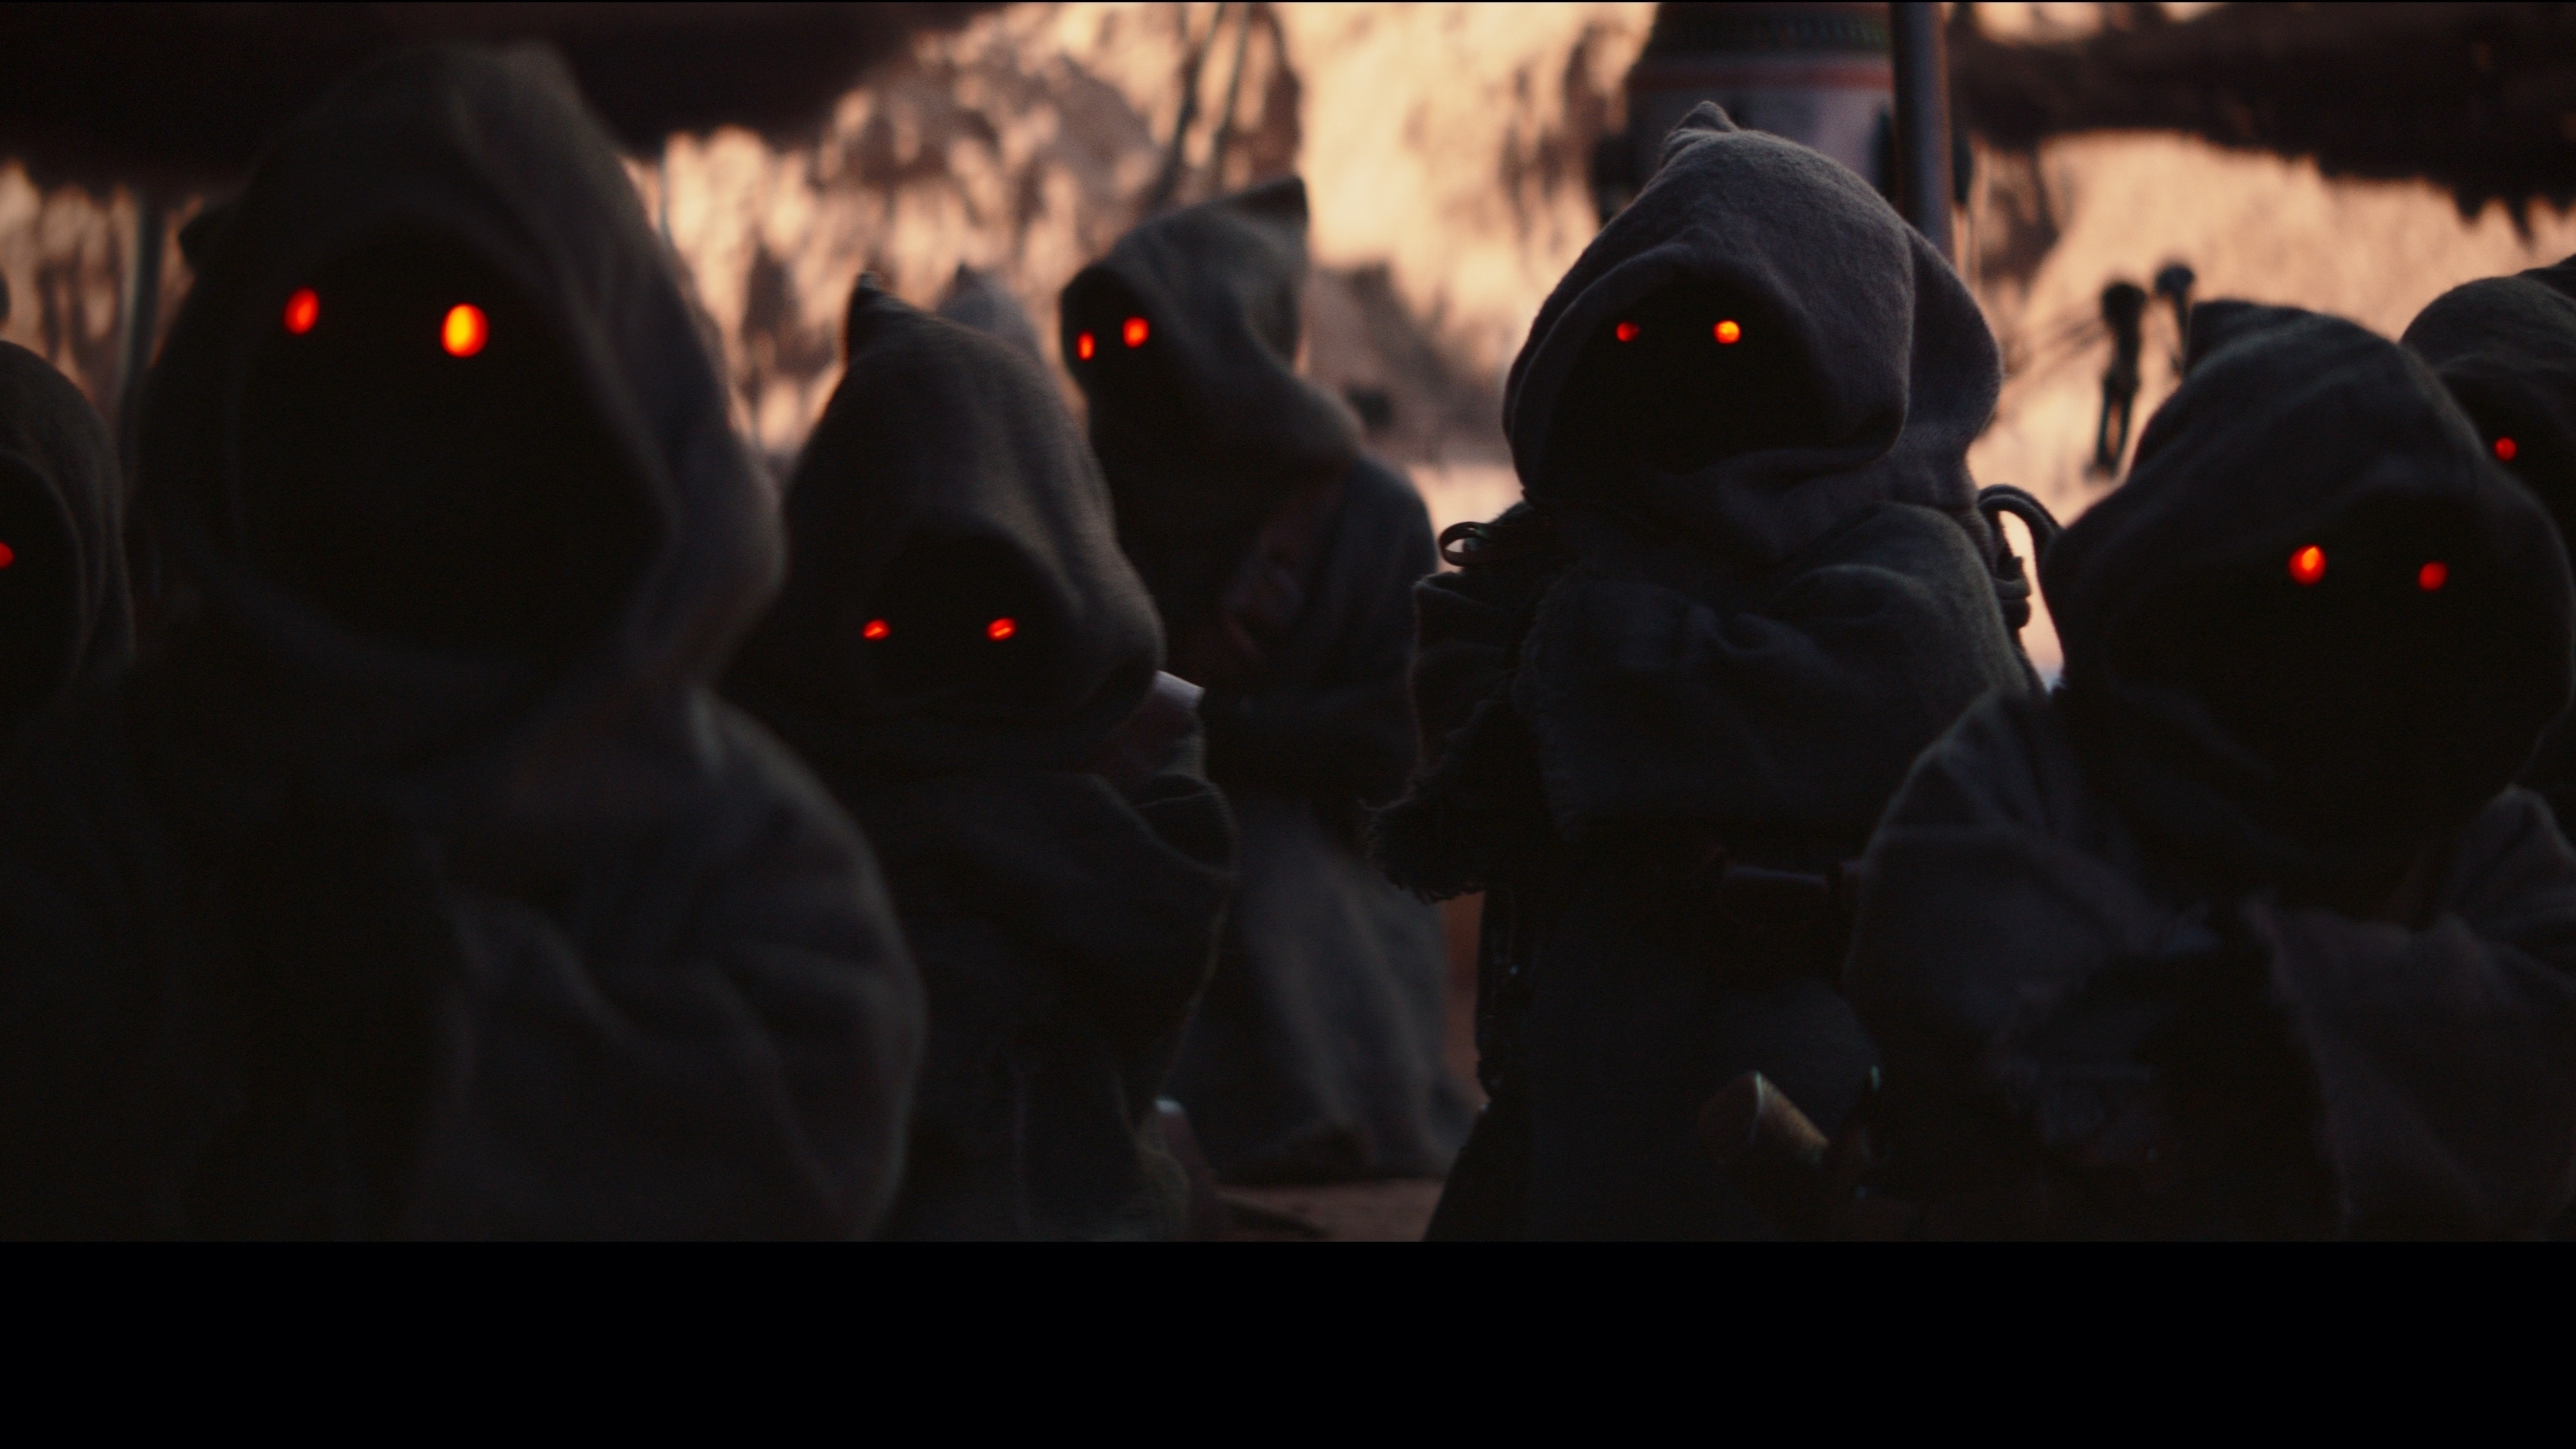 Chapter 2 Jawa in THE MANDALORIAN, exclusively on Disney+